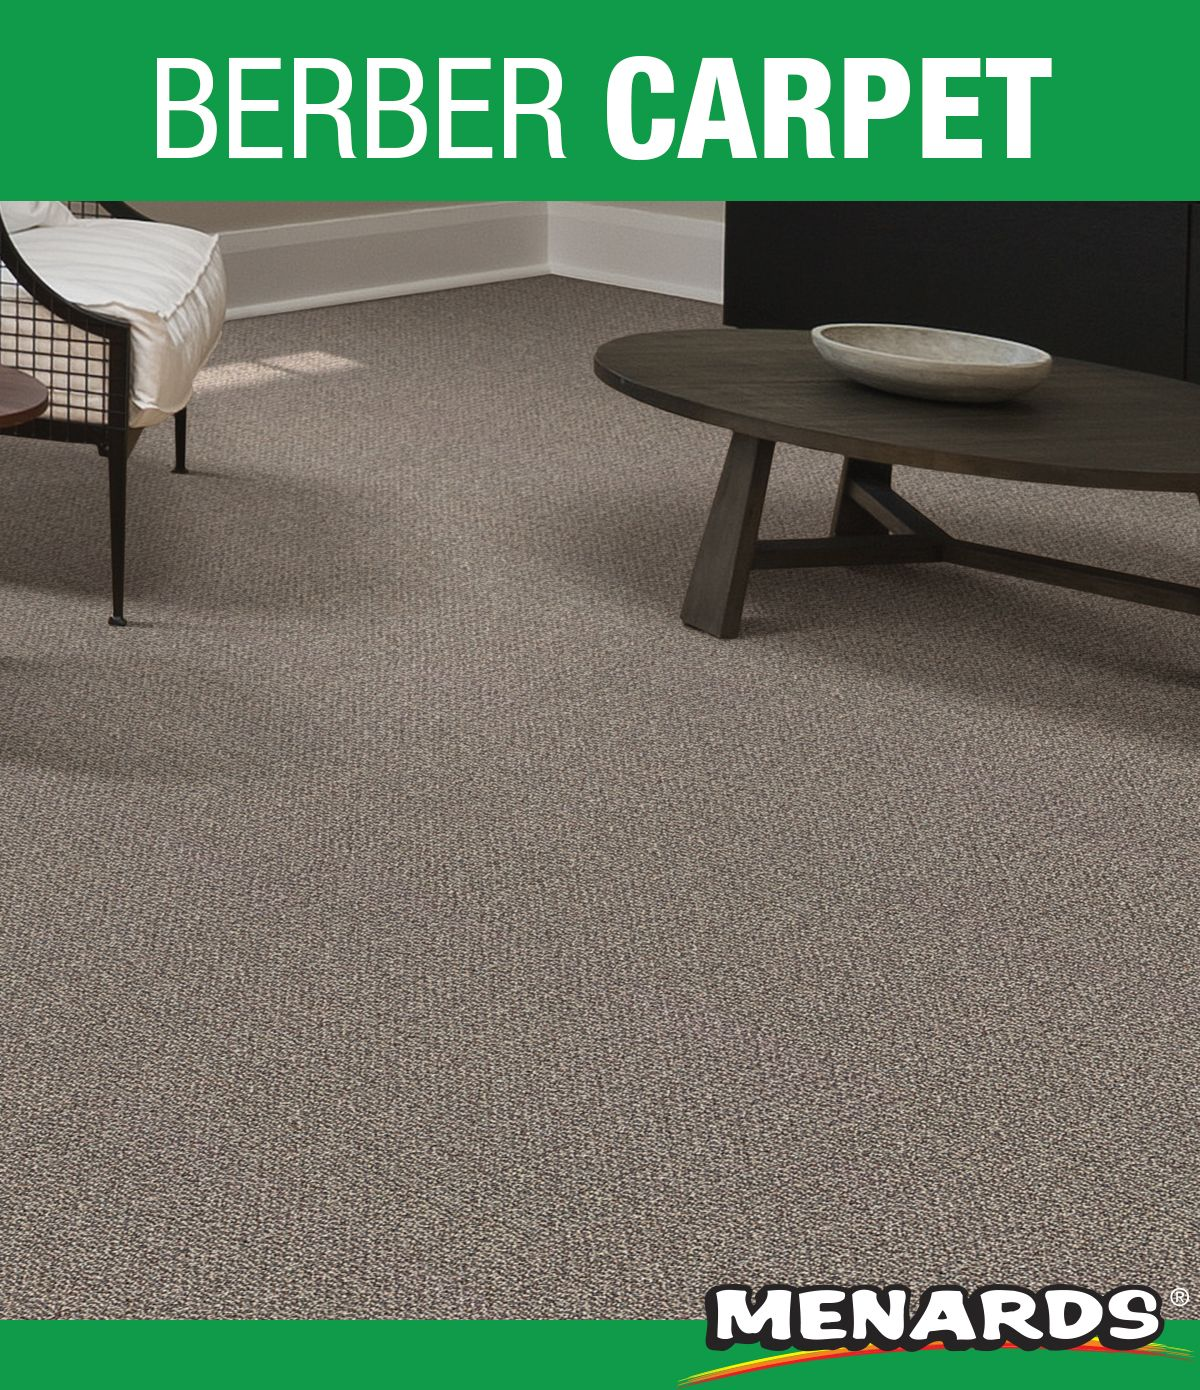 Main Event Is A Textured Loop 100 Bcf Olefin Carpet It Is A Great Choice For Home Office Family Room Or Light Comm Berber Carpet Popular Colors Family Room